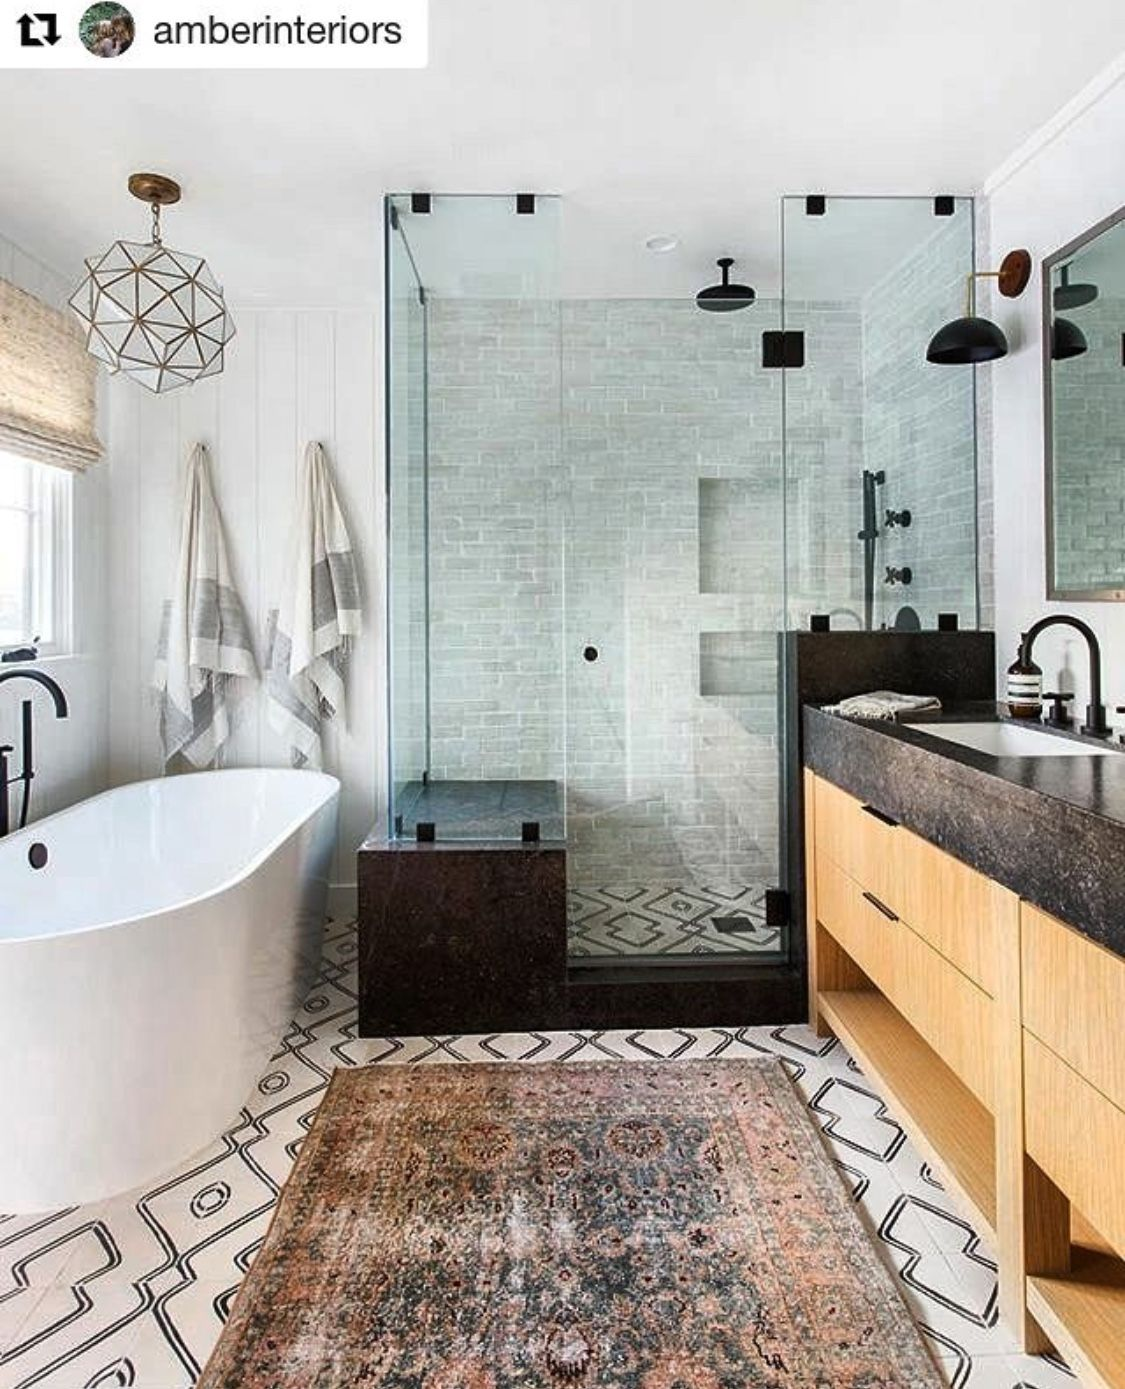 Pin by Re Baumer on bathroom remodel | Pinterest